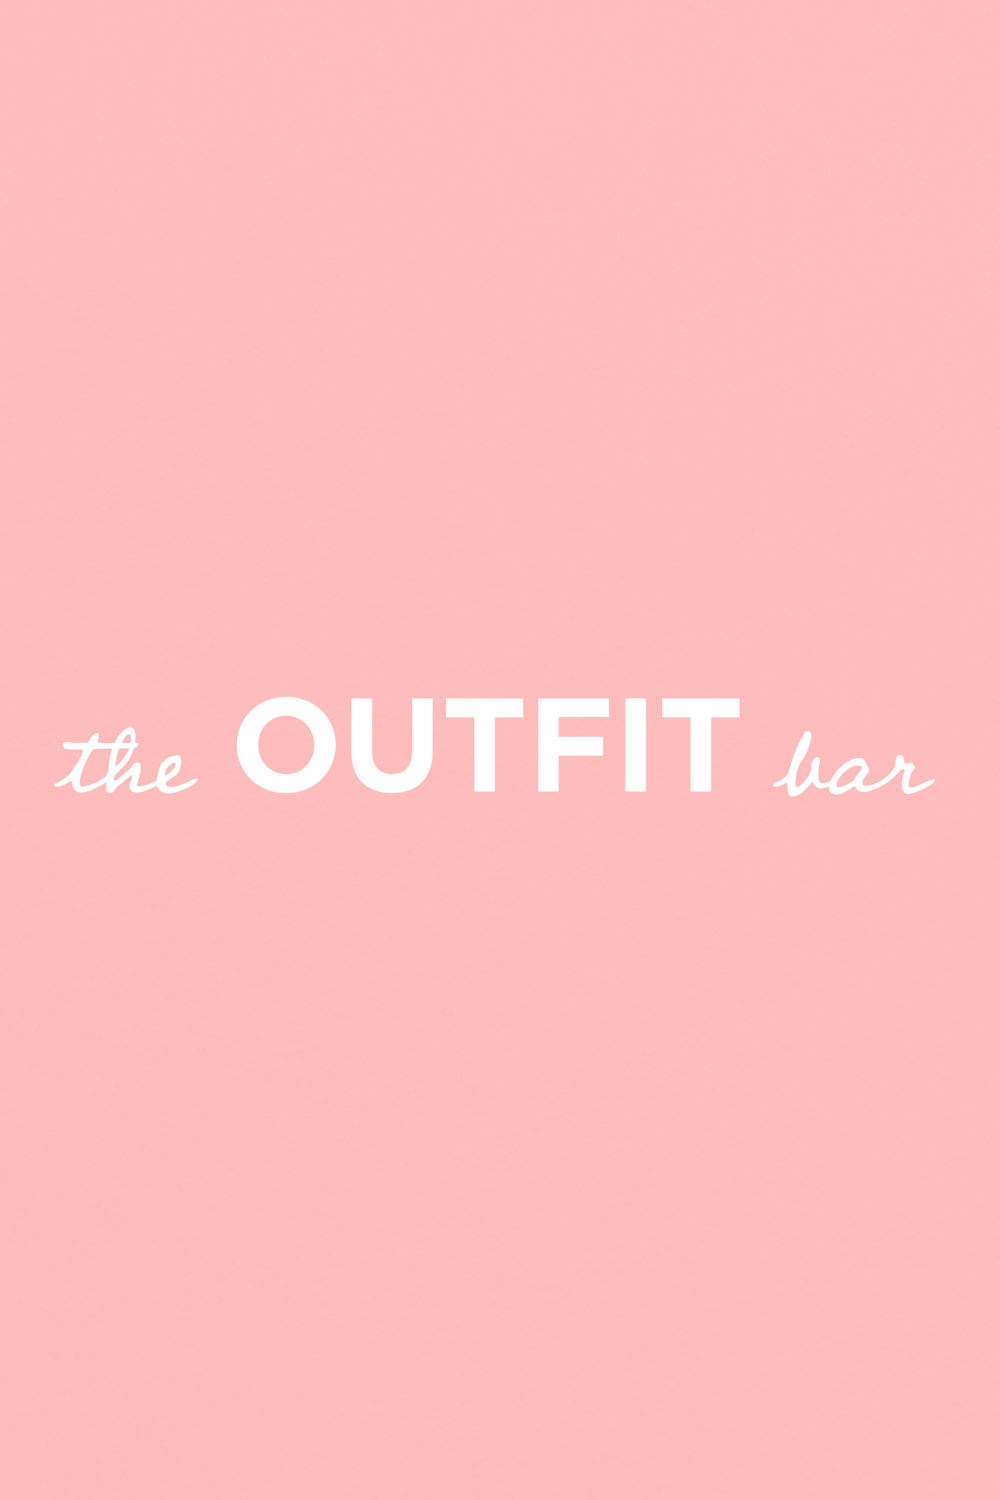 New Find Outfit Ideas At The Outfit Bar At Kohl S We Teamed Up With Style Expert Lilliana Va Video Casual Date Night Outfit Brunch Outfit Spring Girls Night Outfit